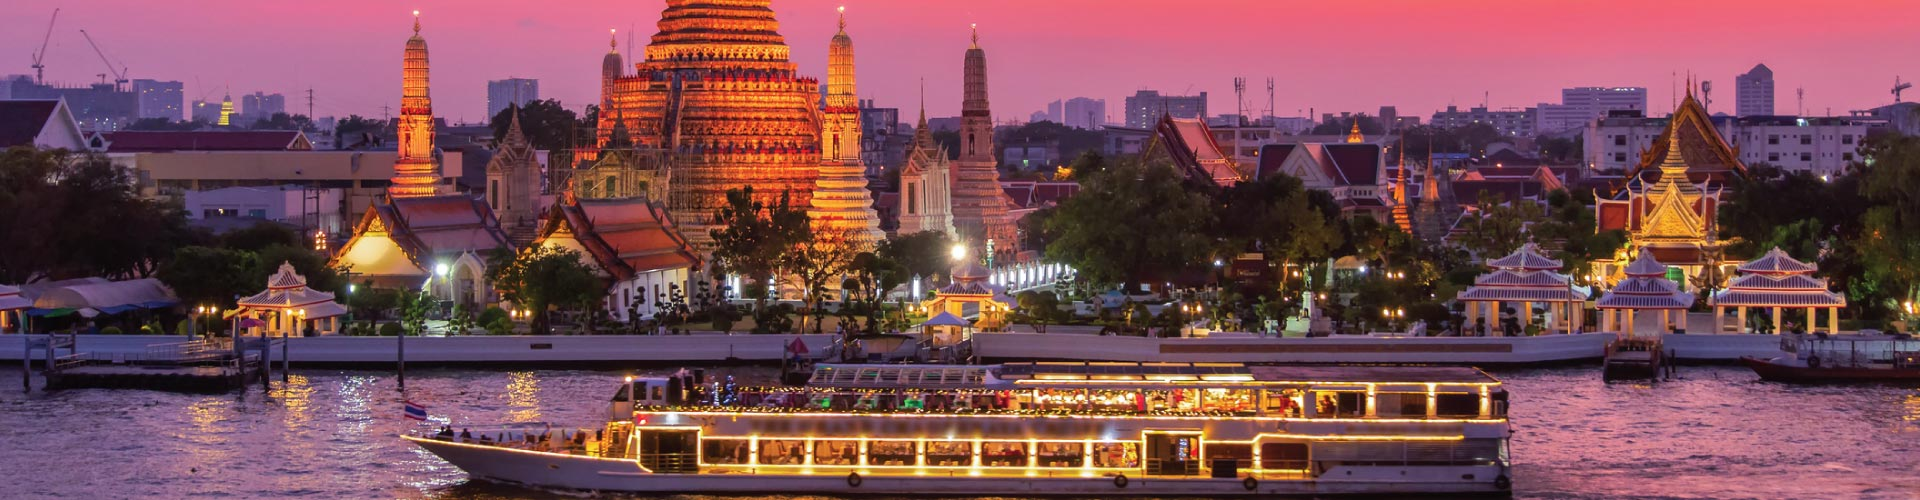 Tour - 4d3n Bangkok & Pattaya Twin City Discovery* - That02alp04kh - R7